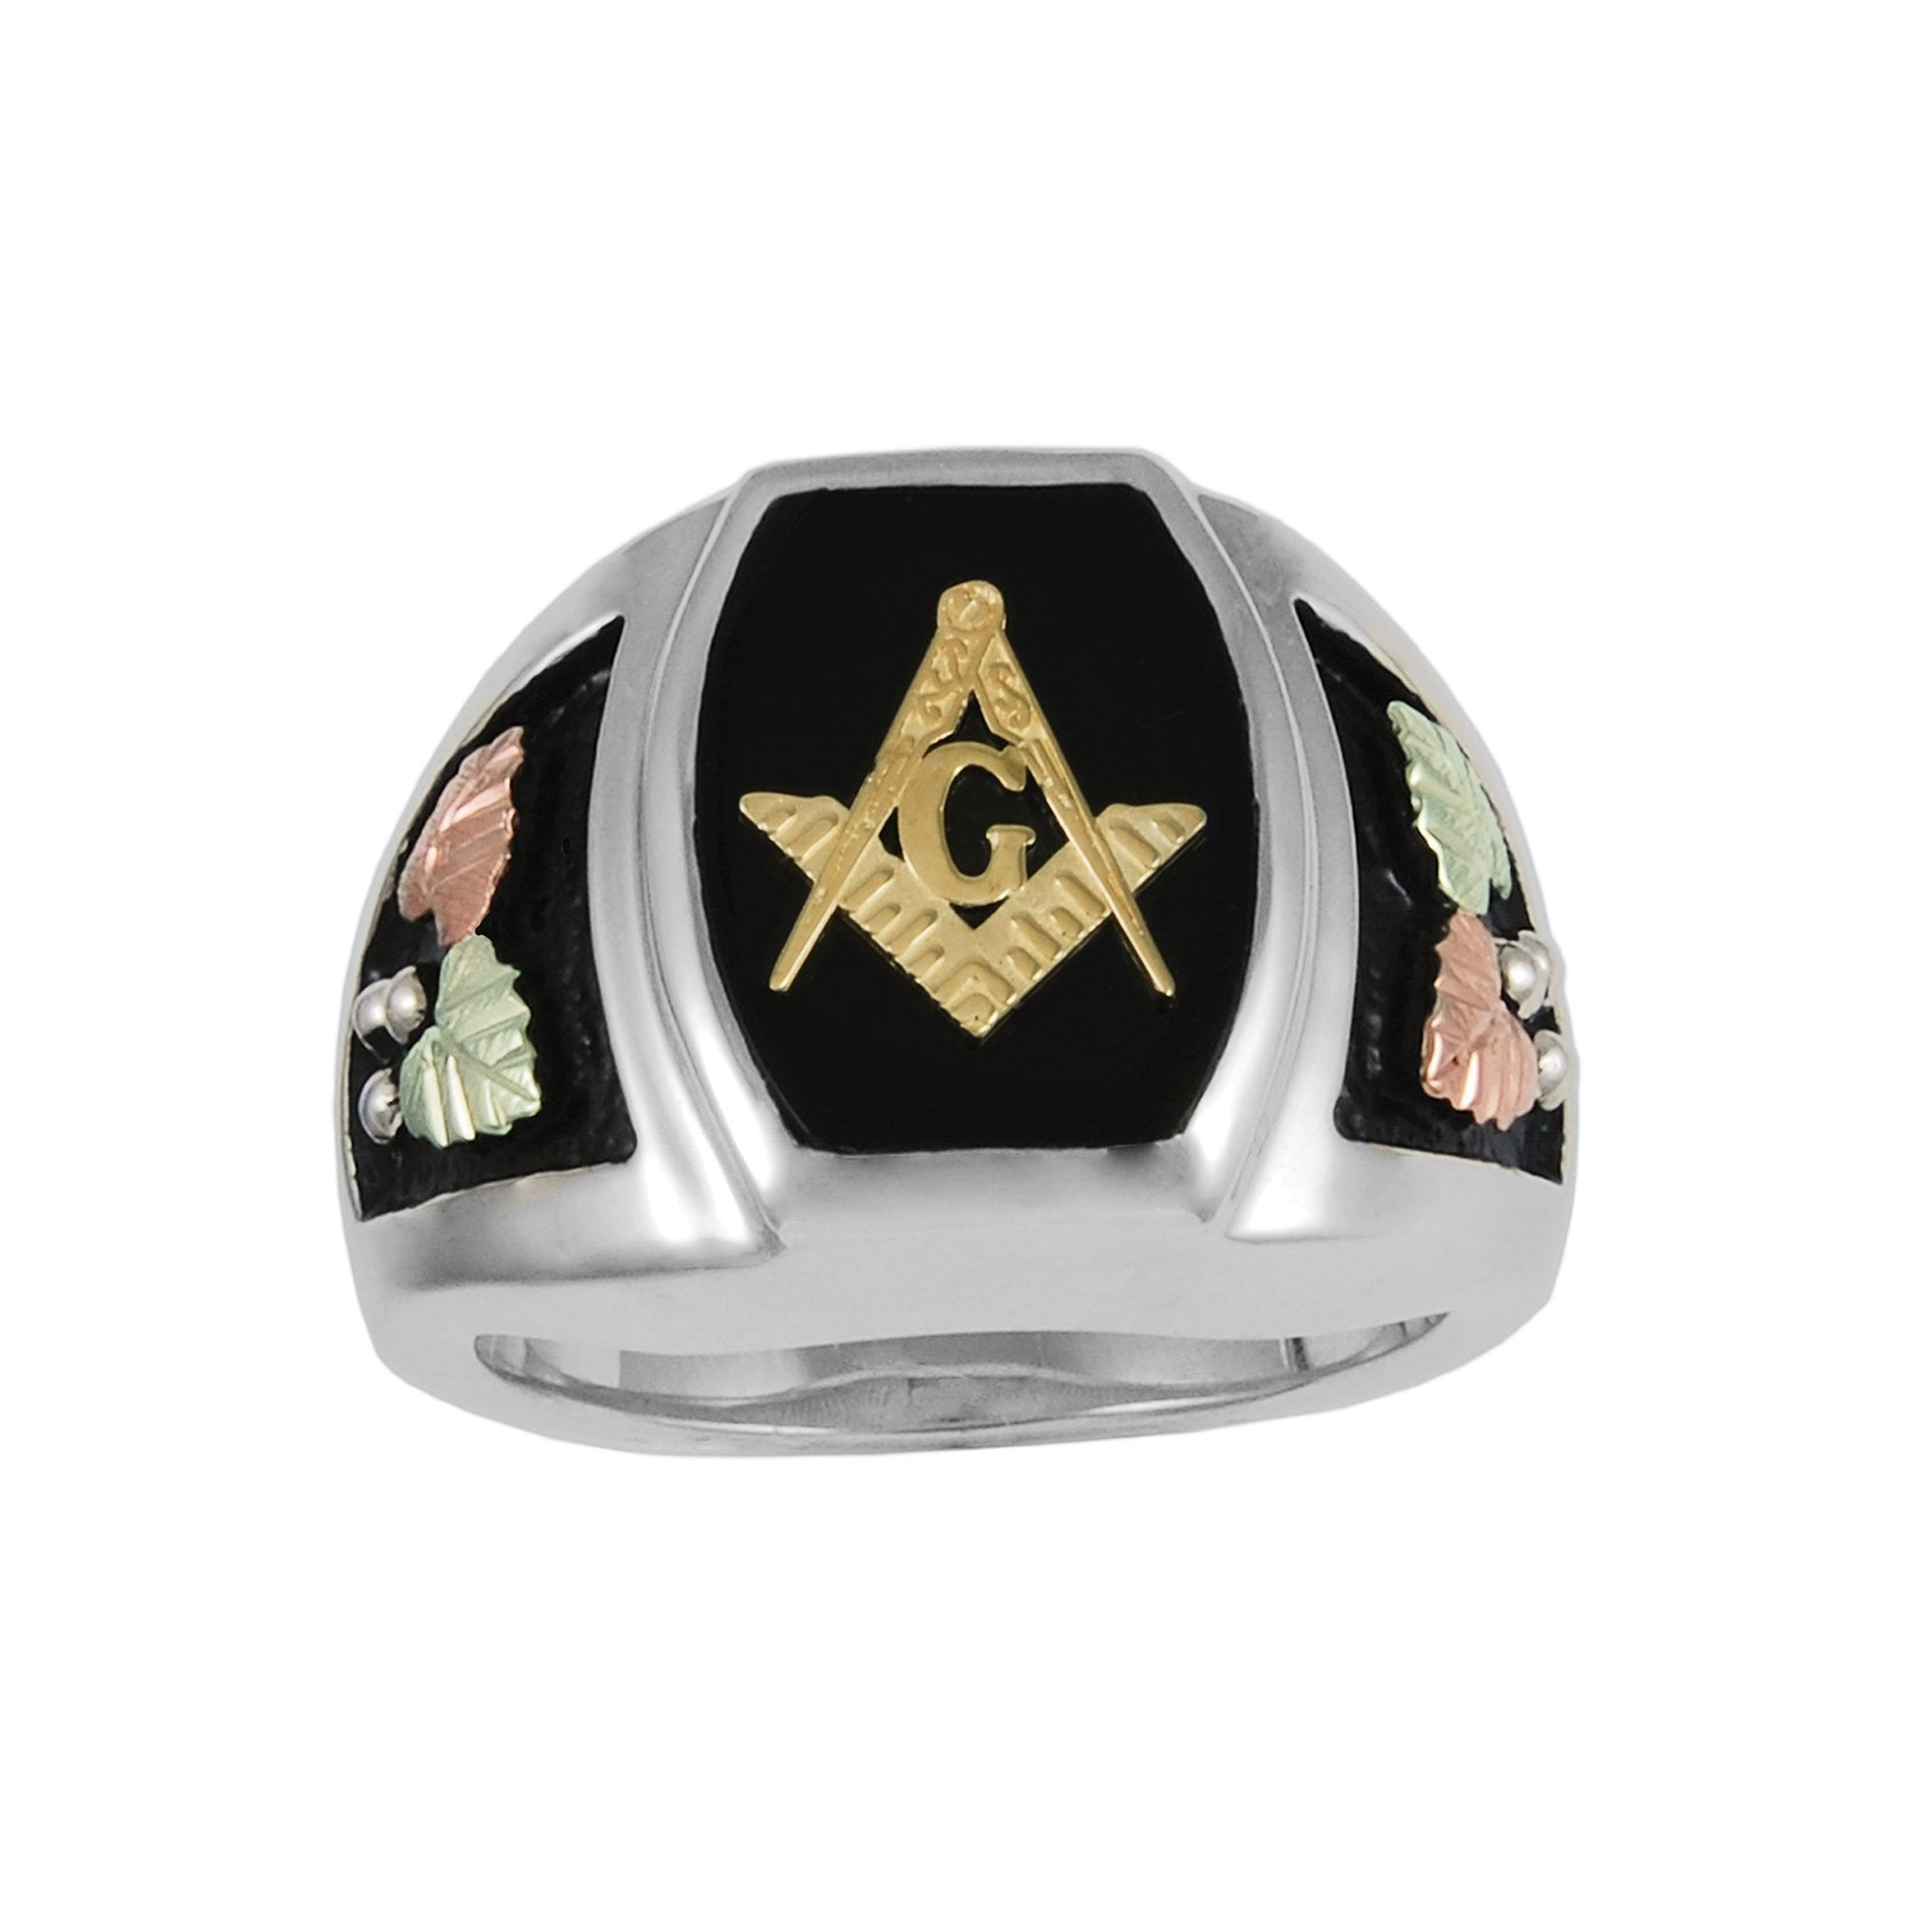 68e9a72ad Mens Sterling Silver Black Hills Gold Rounded Masonic Ring - Jewelry. MADE  IN USA